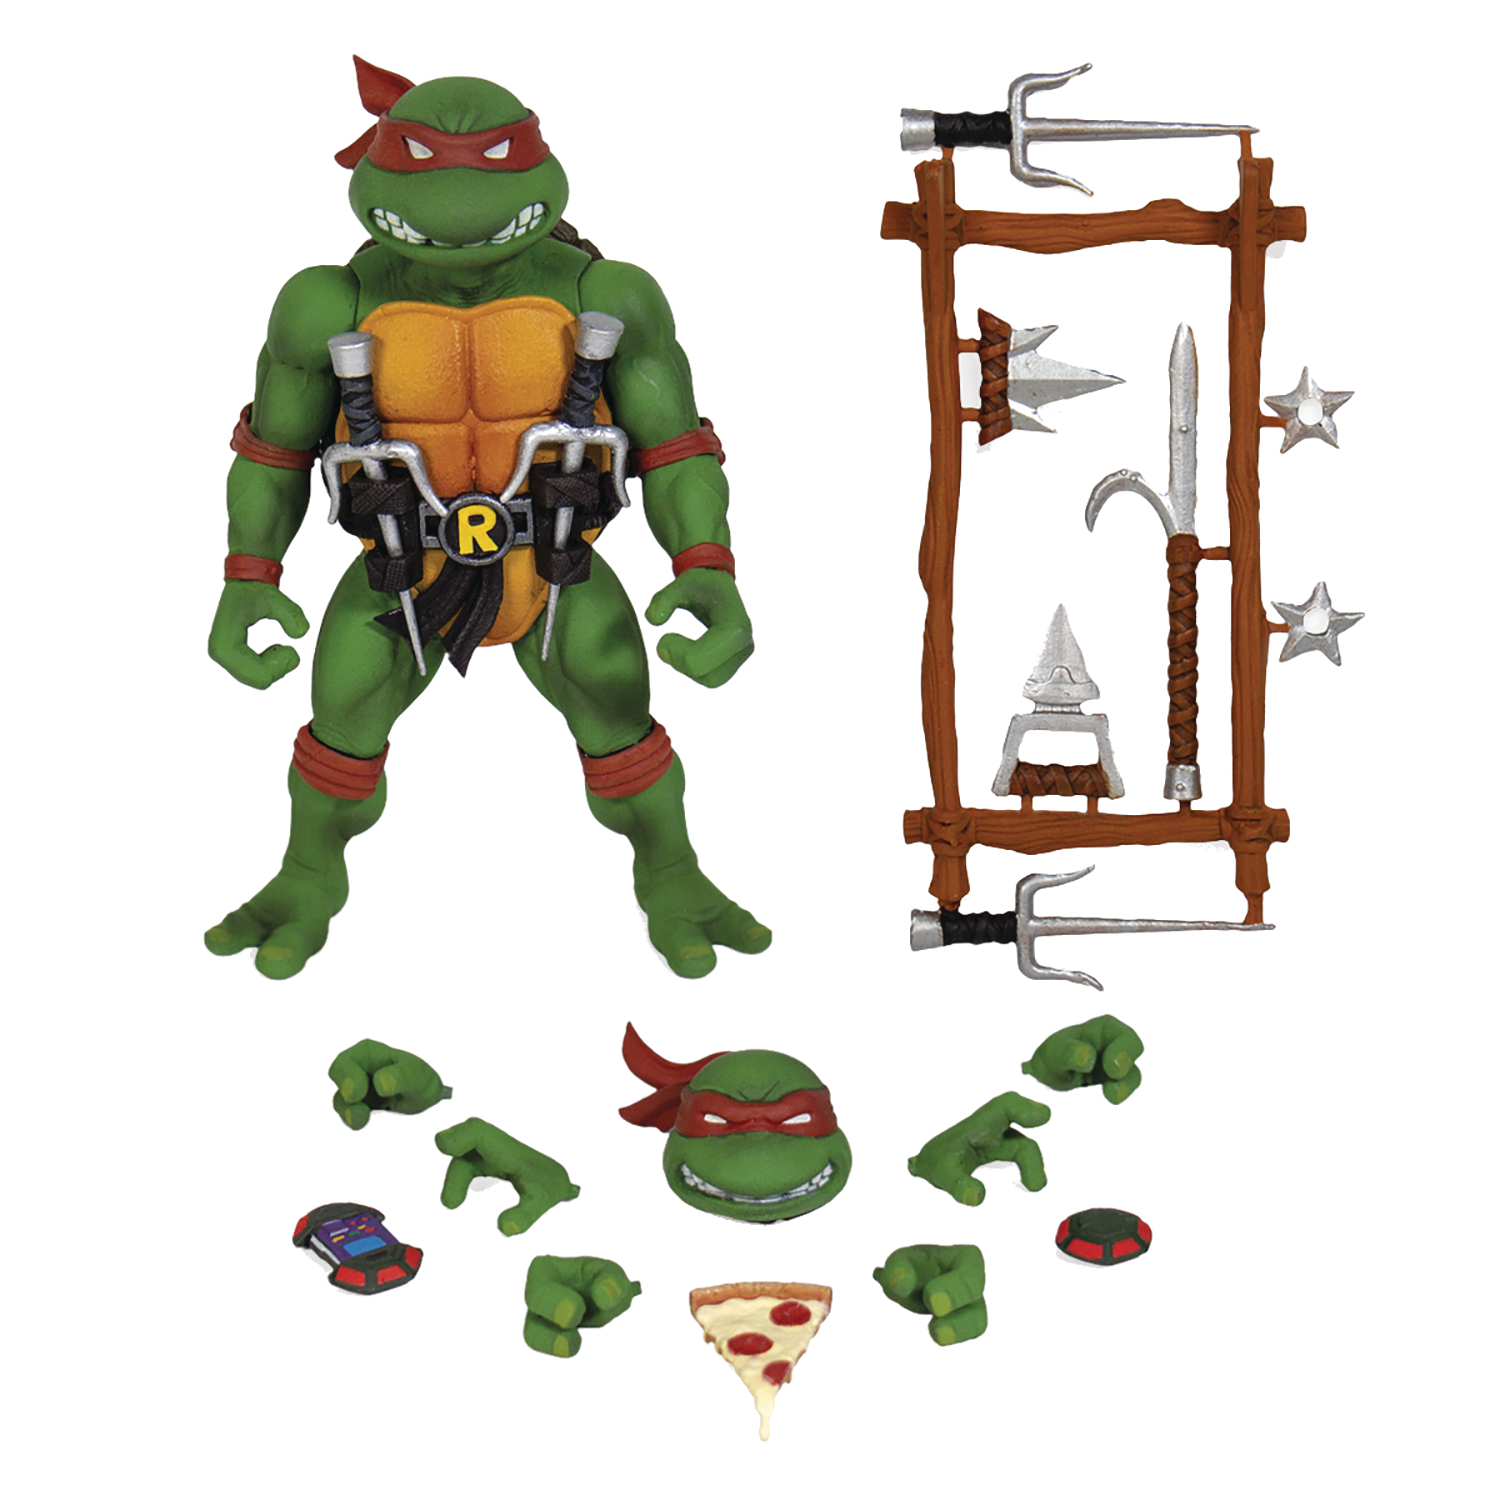 TMNT ULTIMATES WAVE 1 RAPHAEL ACTION FIGURE  (AUG198978